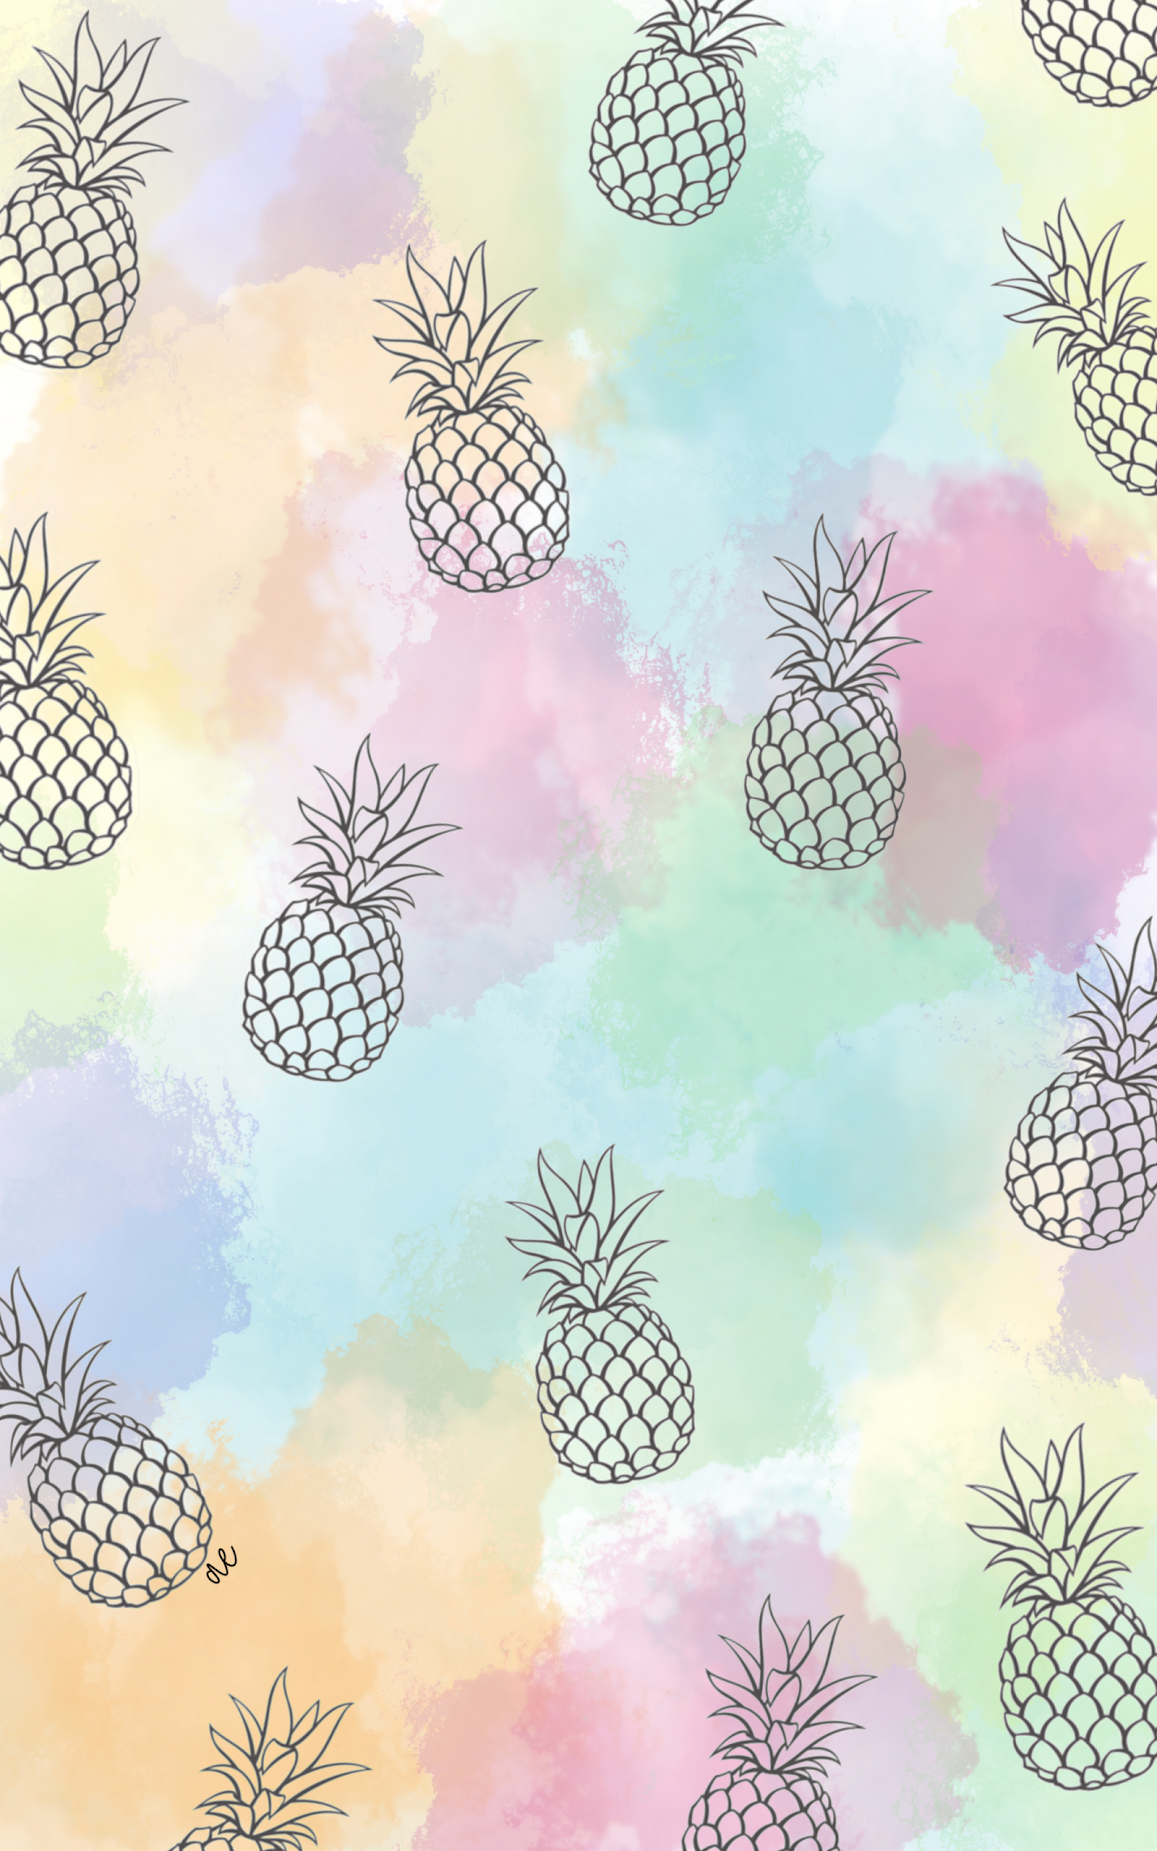 Pineapple Vacation Wallpaper In 2021 Iphone Wallpaper Pineapple Cute Pineapple Wallpaper Pineapple Wallpaper